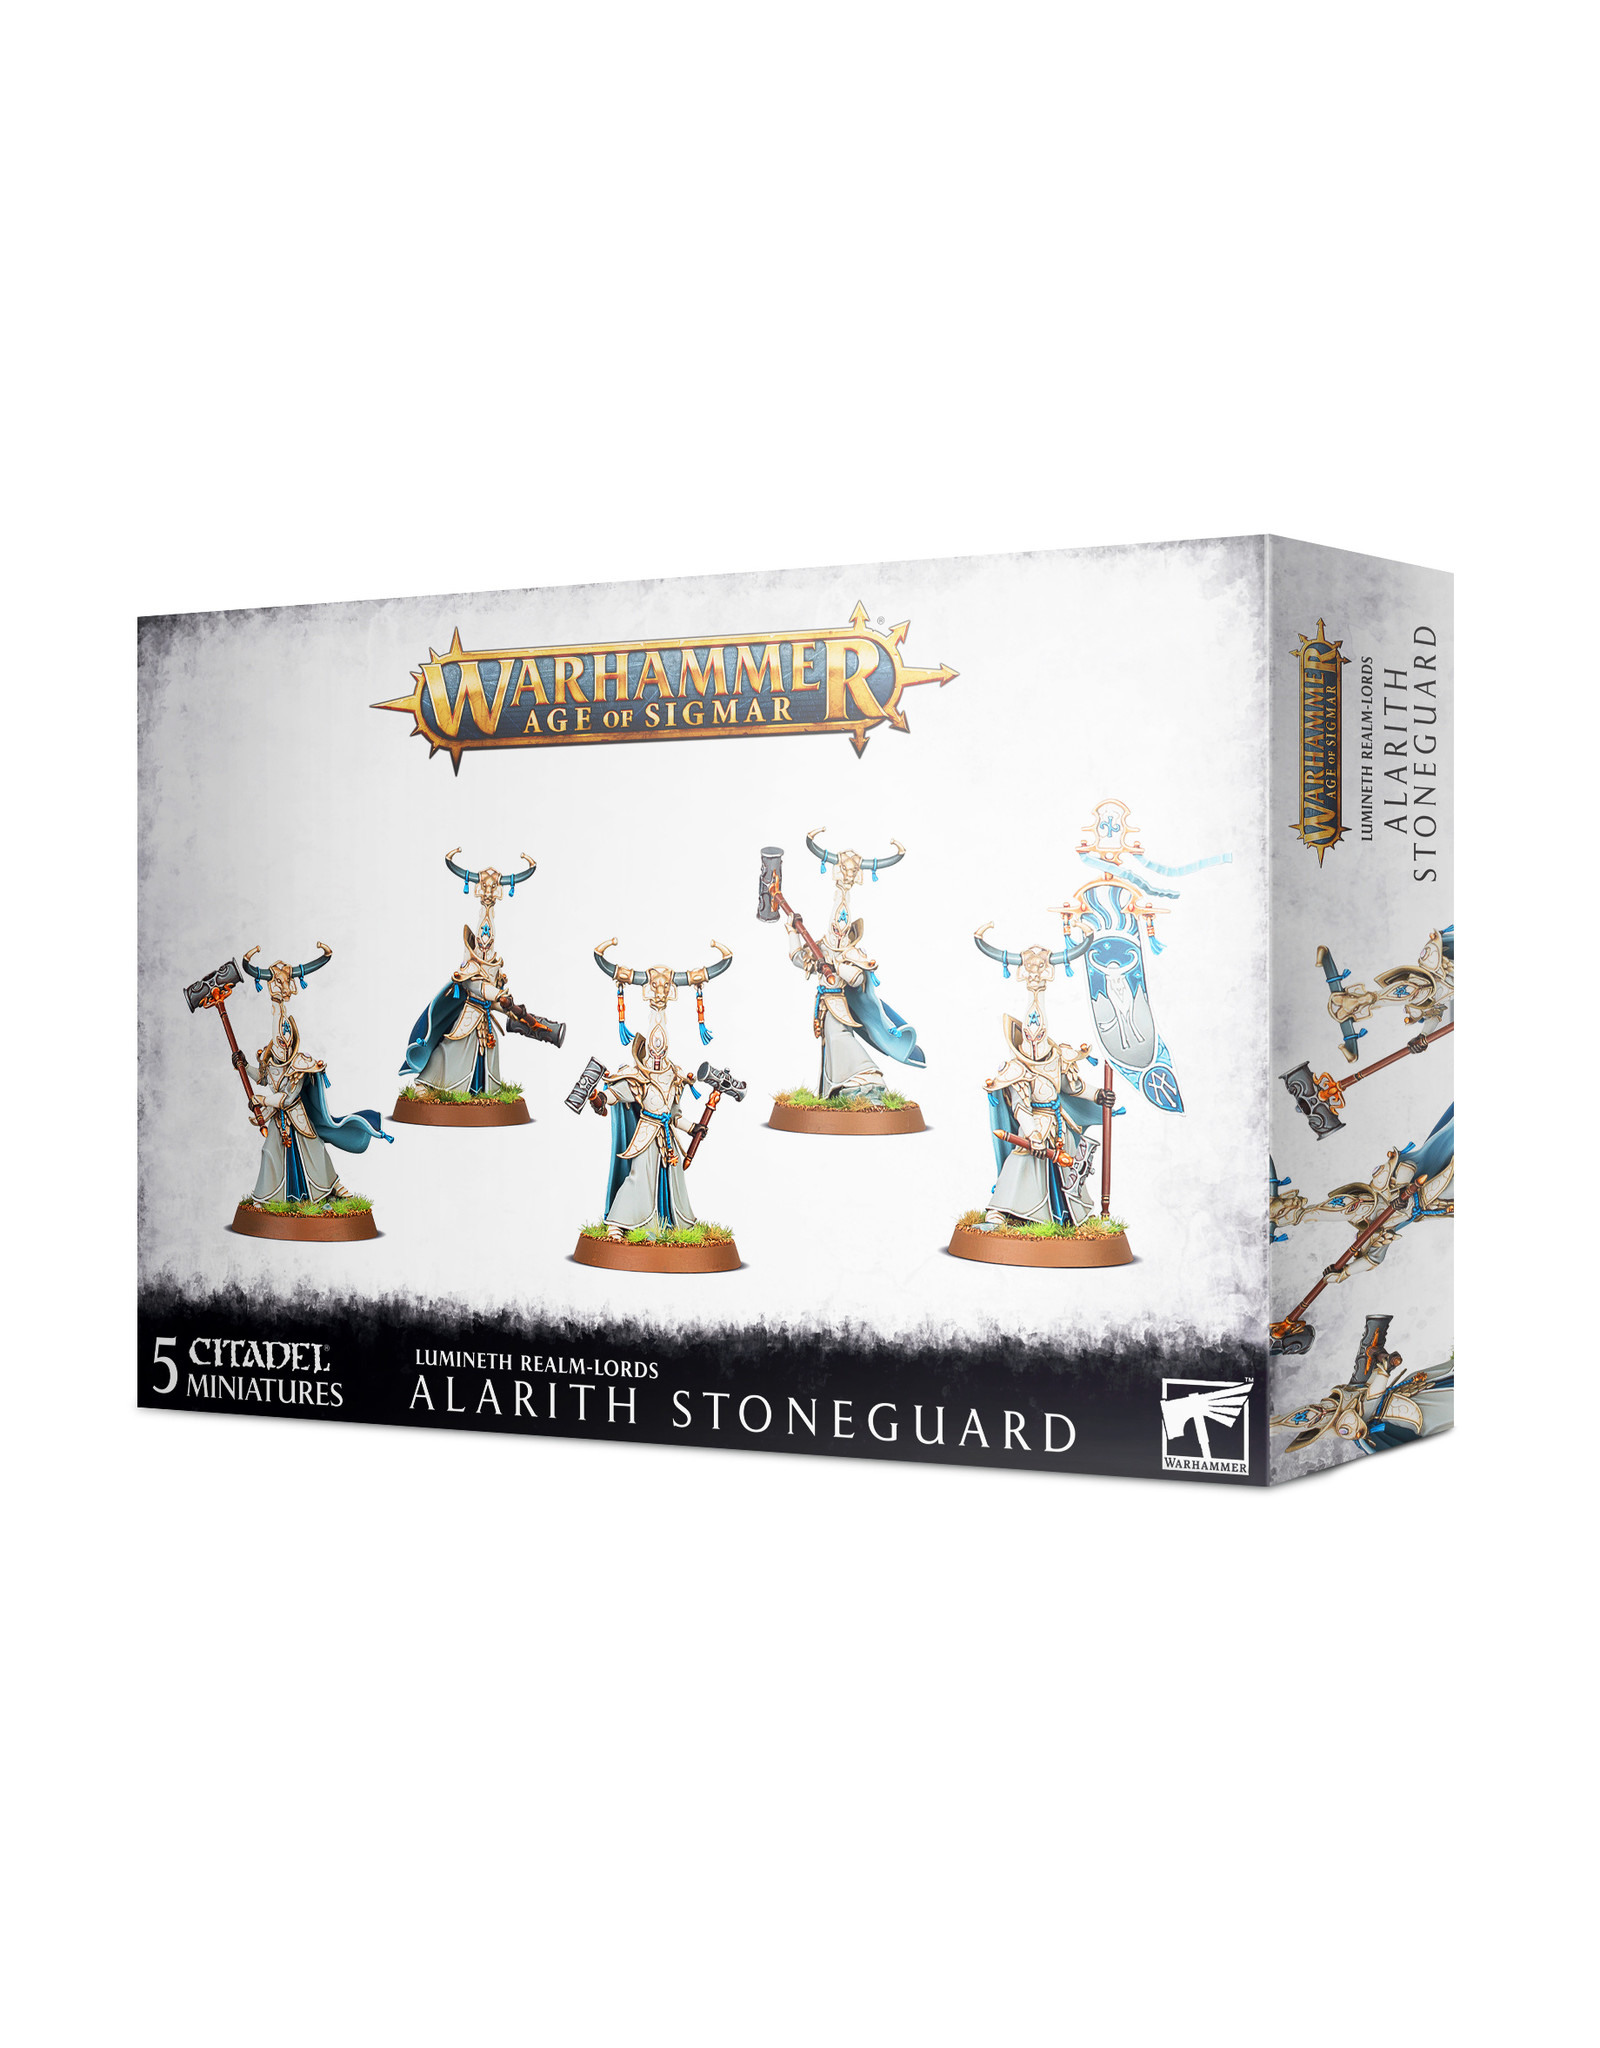 Age of Sigmar Lumineth Realm-Lords: Alarith Stoneguard